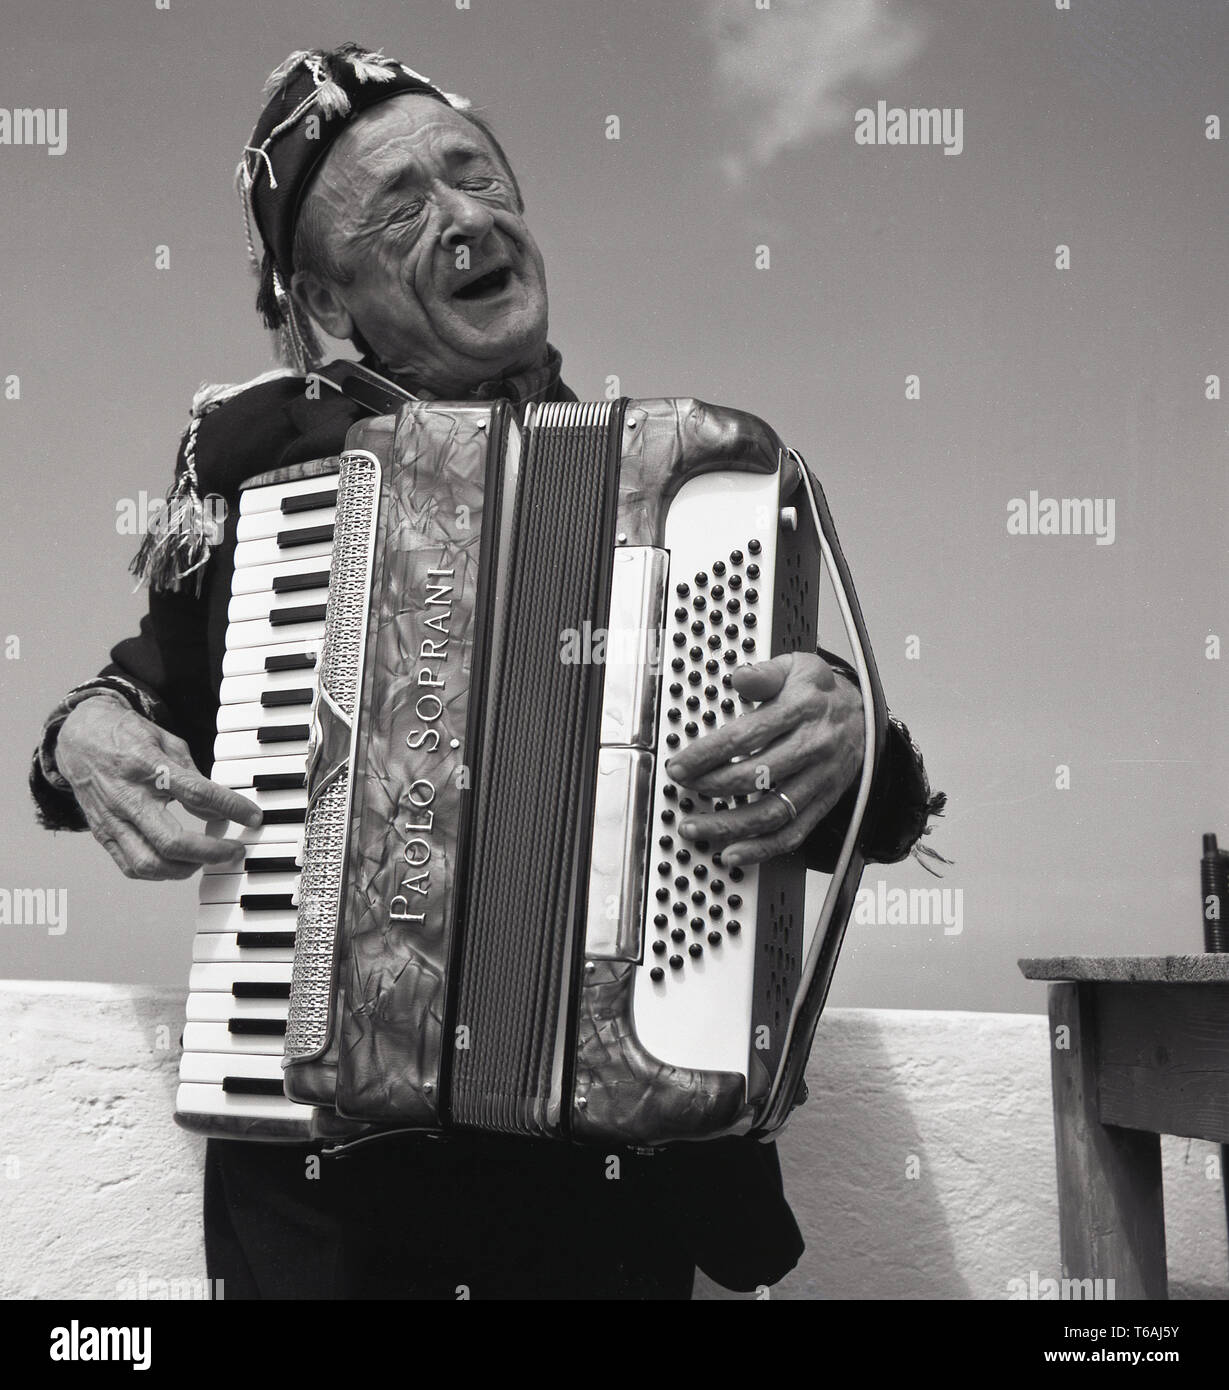 1950s, historical, male street musician or performer, an elderly man